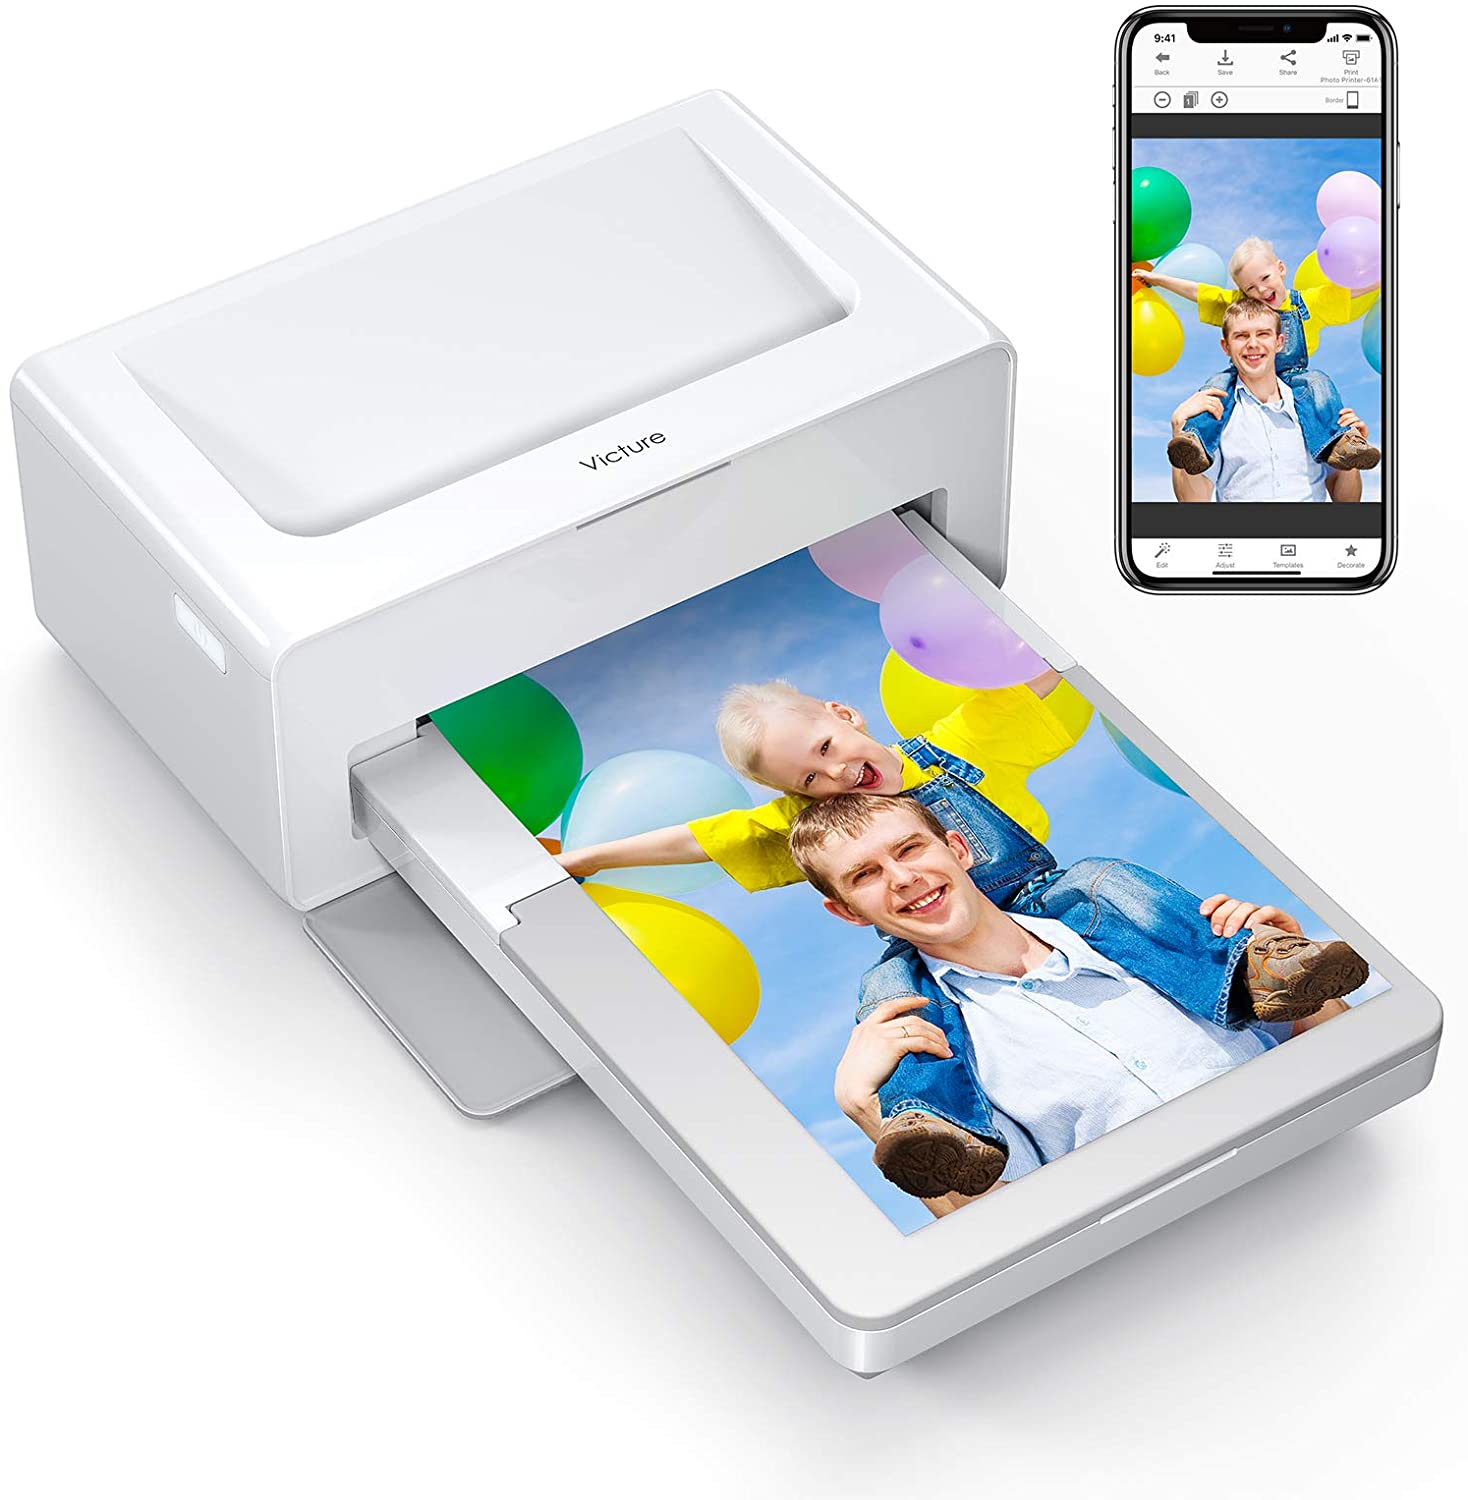 Victure Photo Printer, Instant Photo Printer to print Photos from Your Phone Conveniently, Compatible with iOS & Android Devices uk reviews